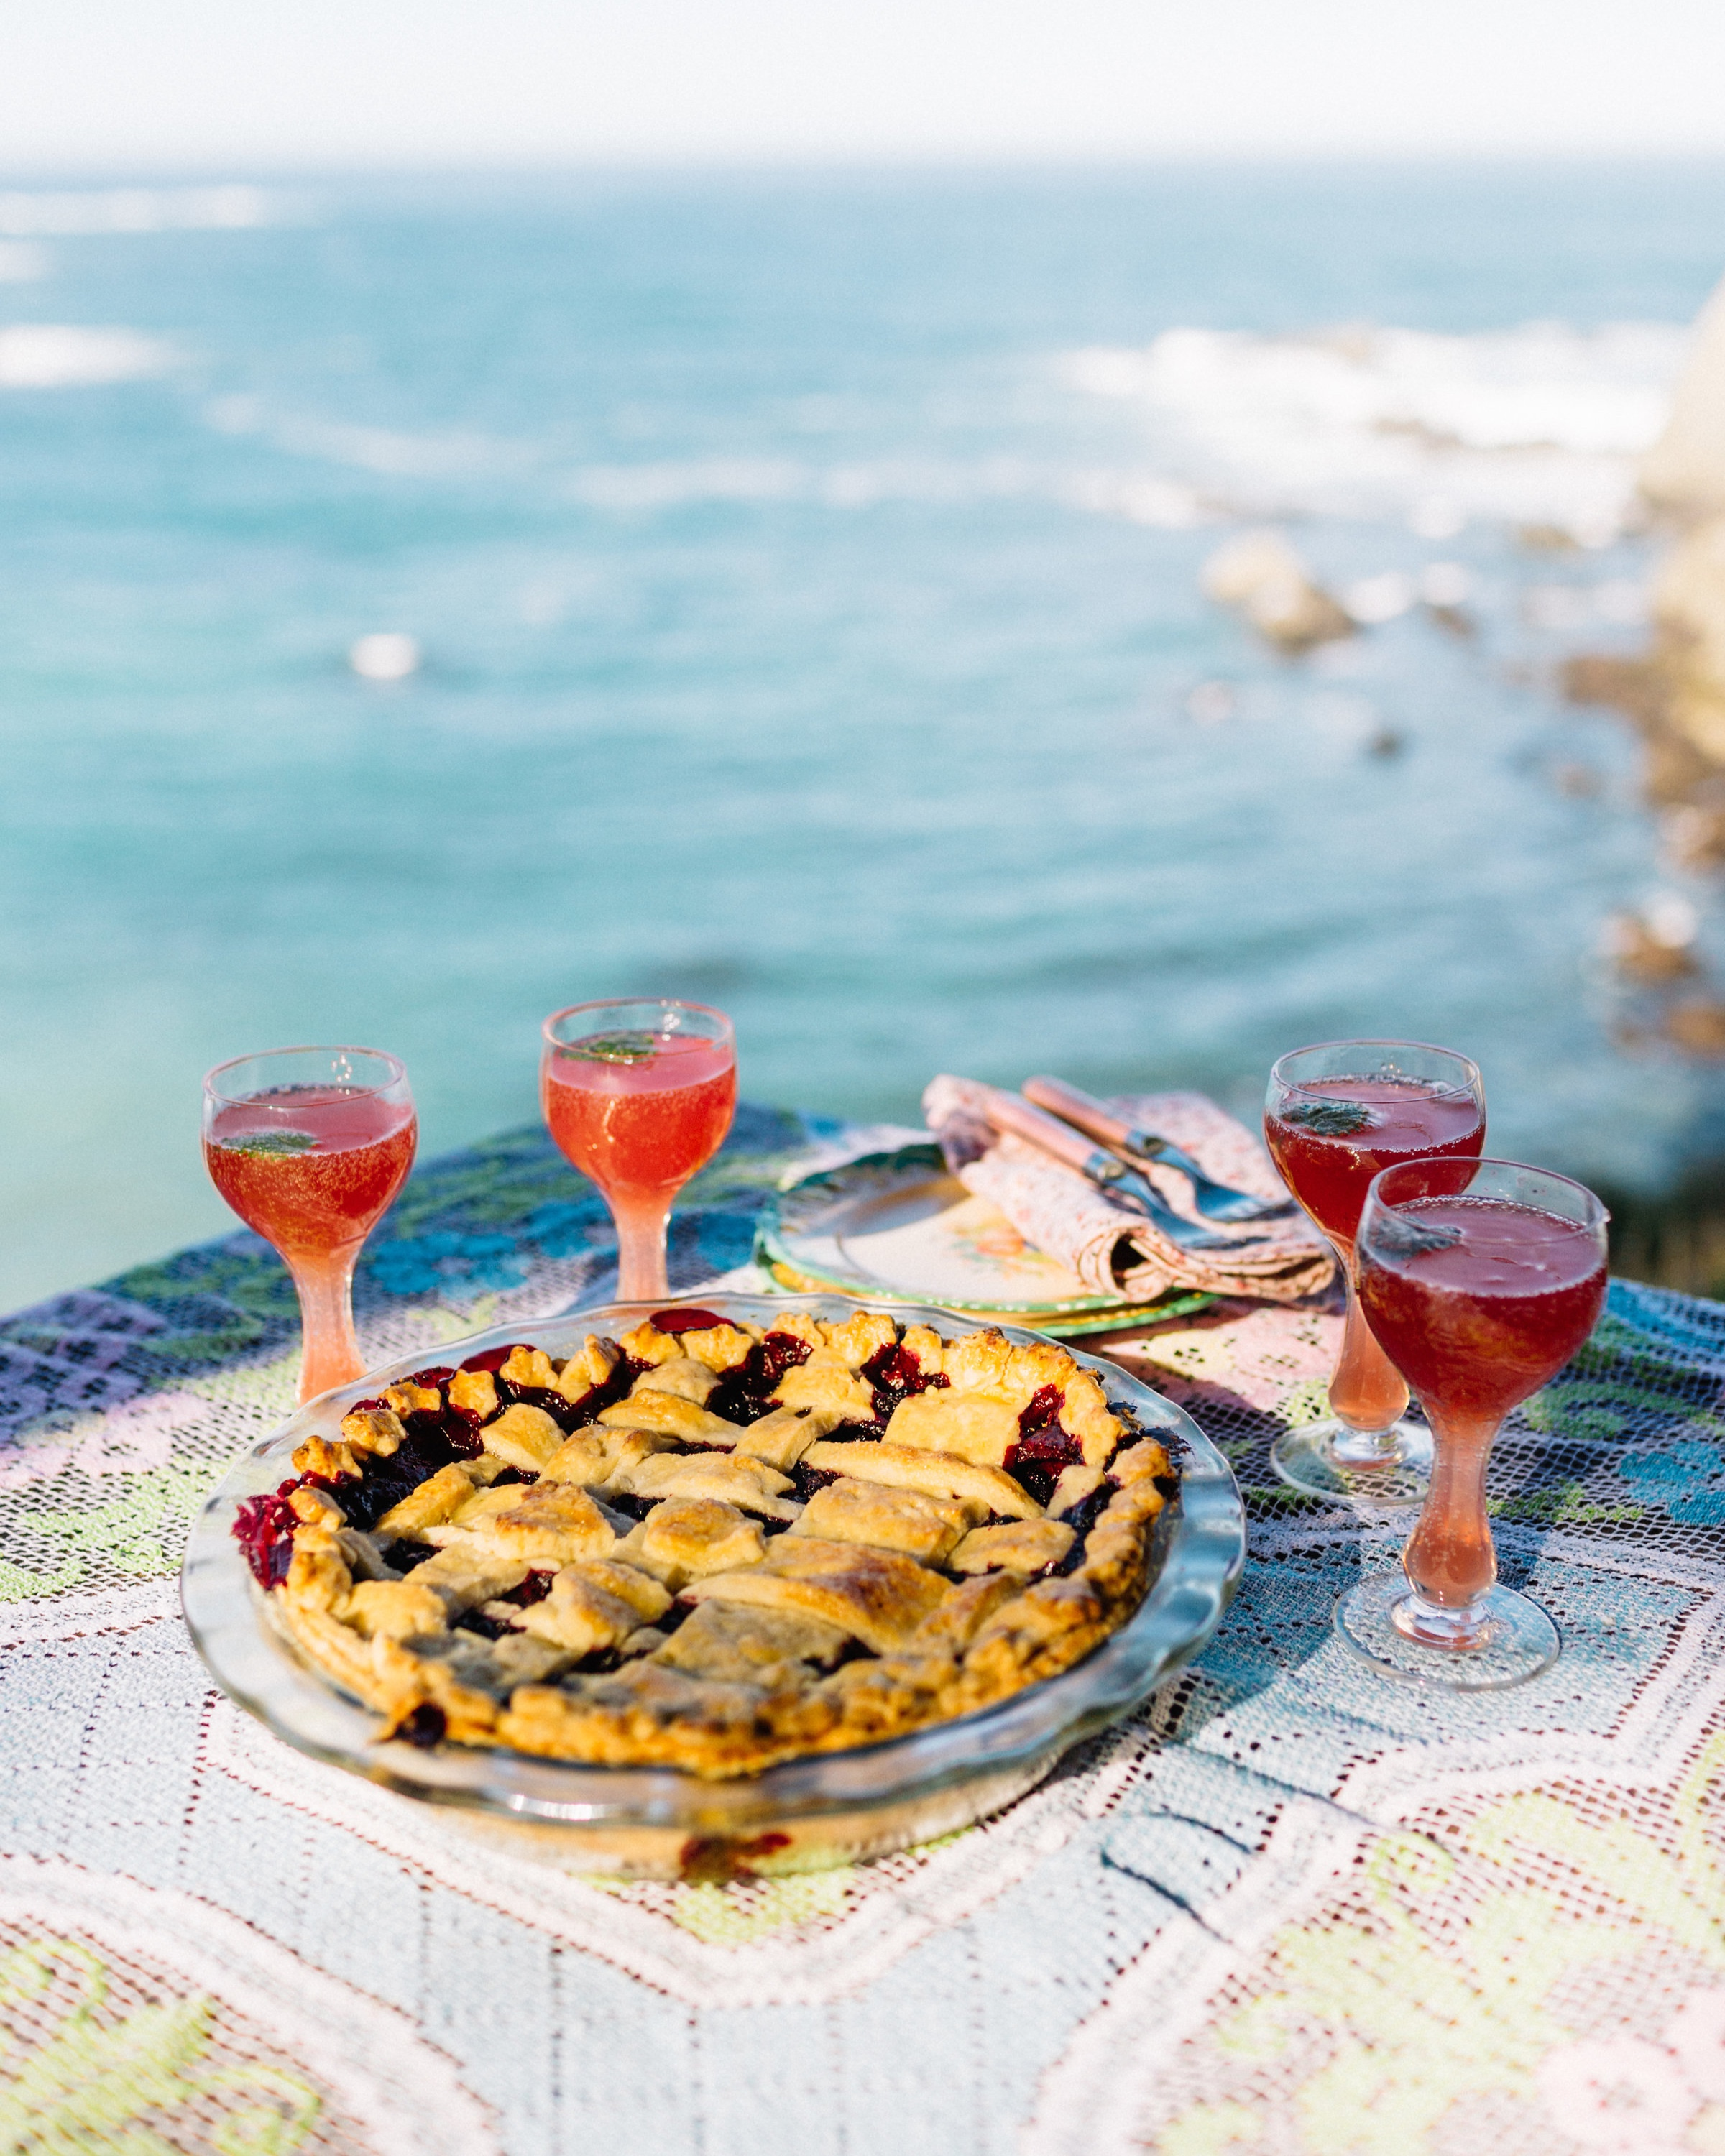 Pie+and+Sea+with+cocktails.jpg